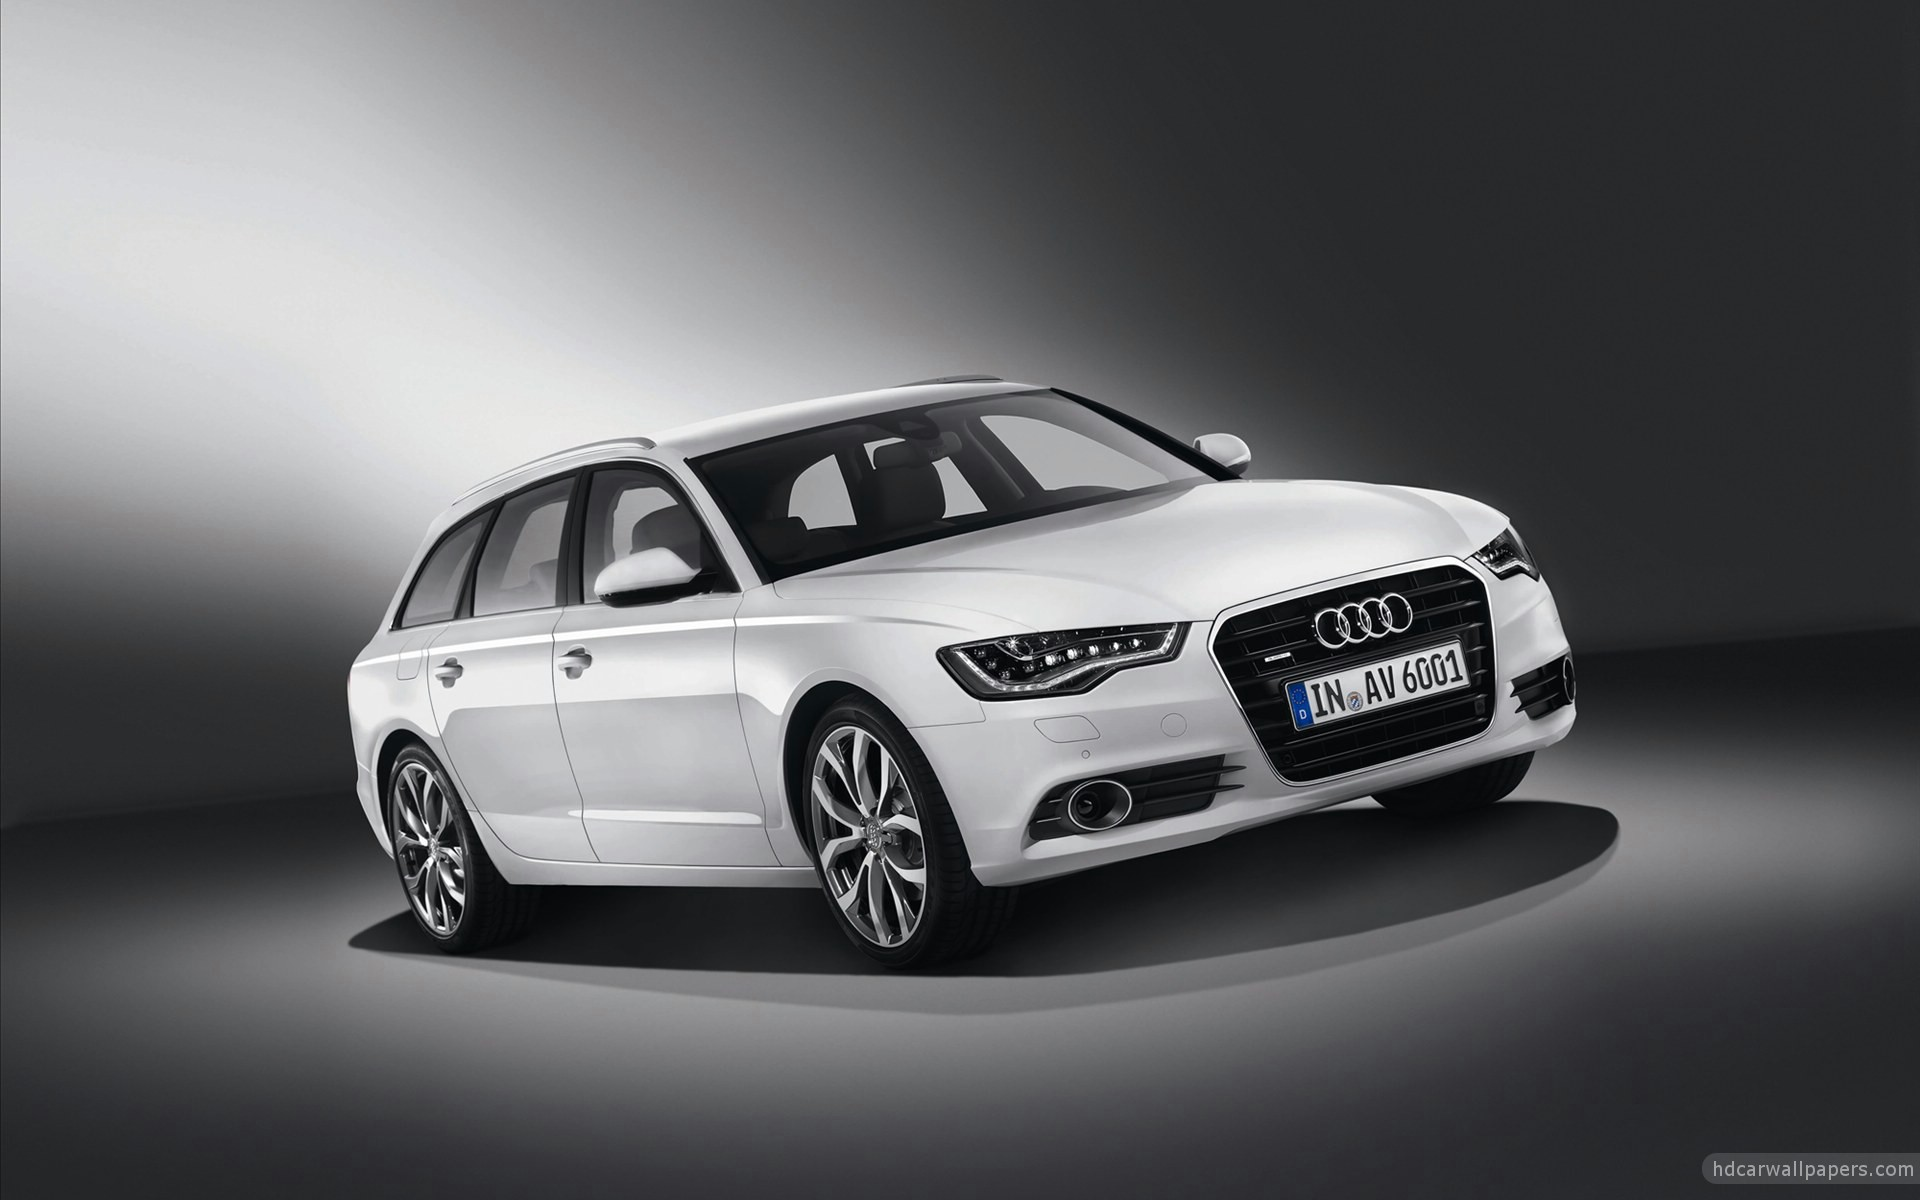 2012 Audi A6 Avant Wallpaper Hd Car Wallpapers Id 2045